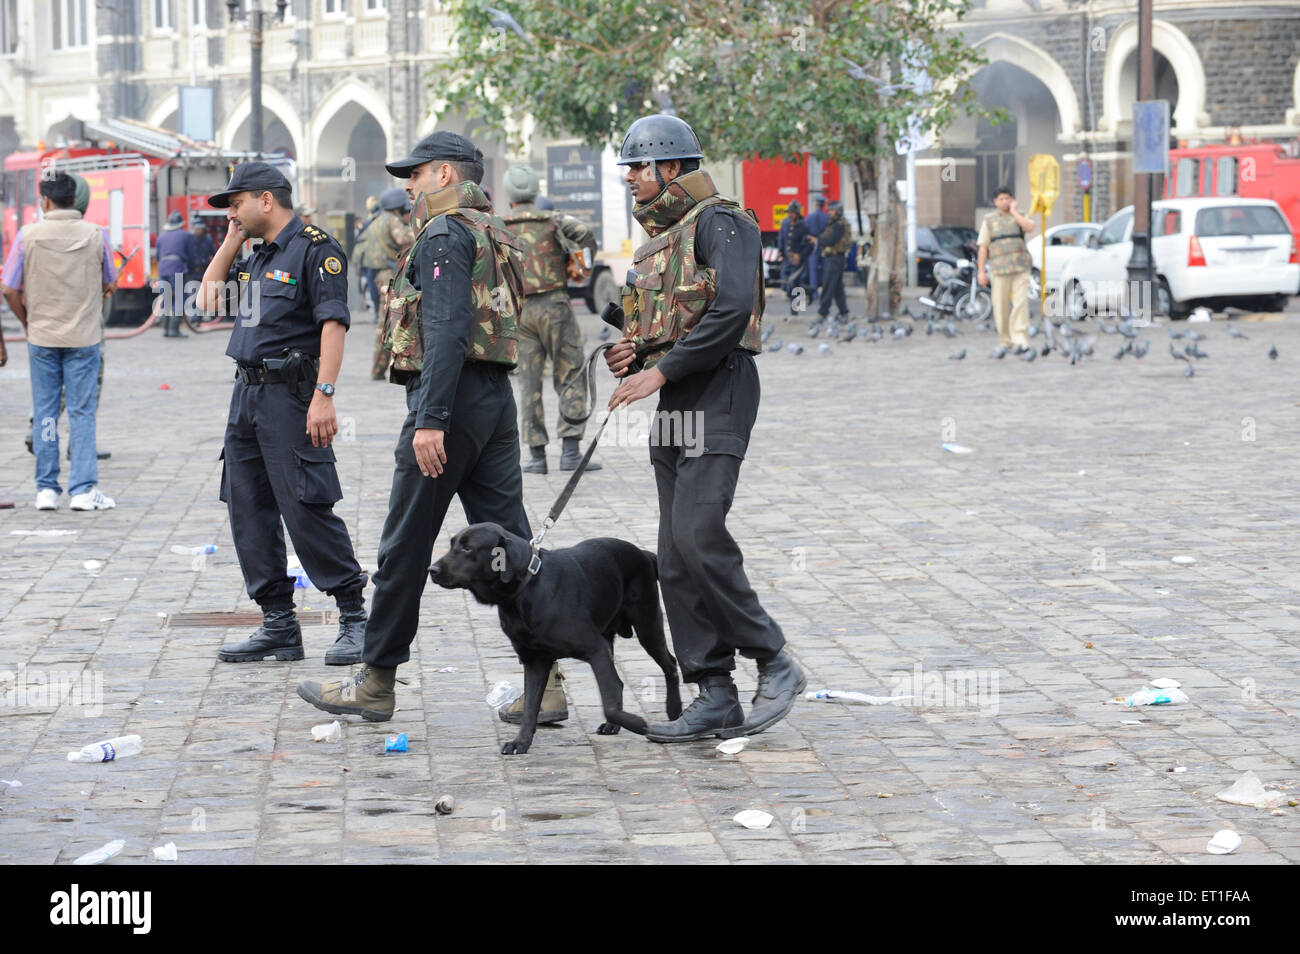 National Security Guard NSG commandos Sniffer dog Taj Mahal hotel ; Terrorist attack Deccan 26 November 2008 in - Stock Image